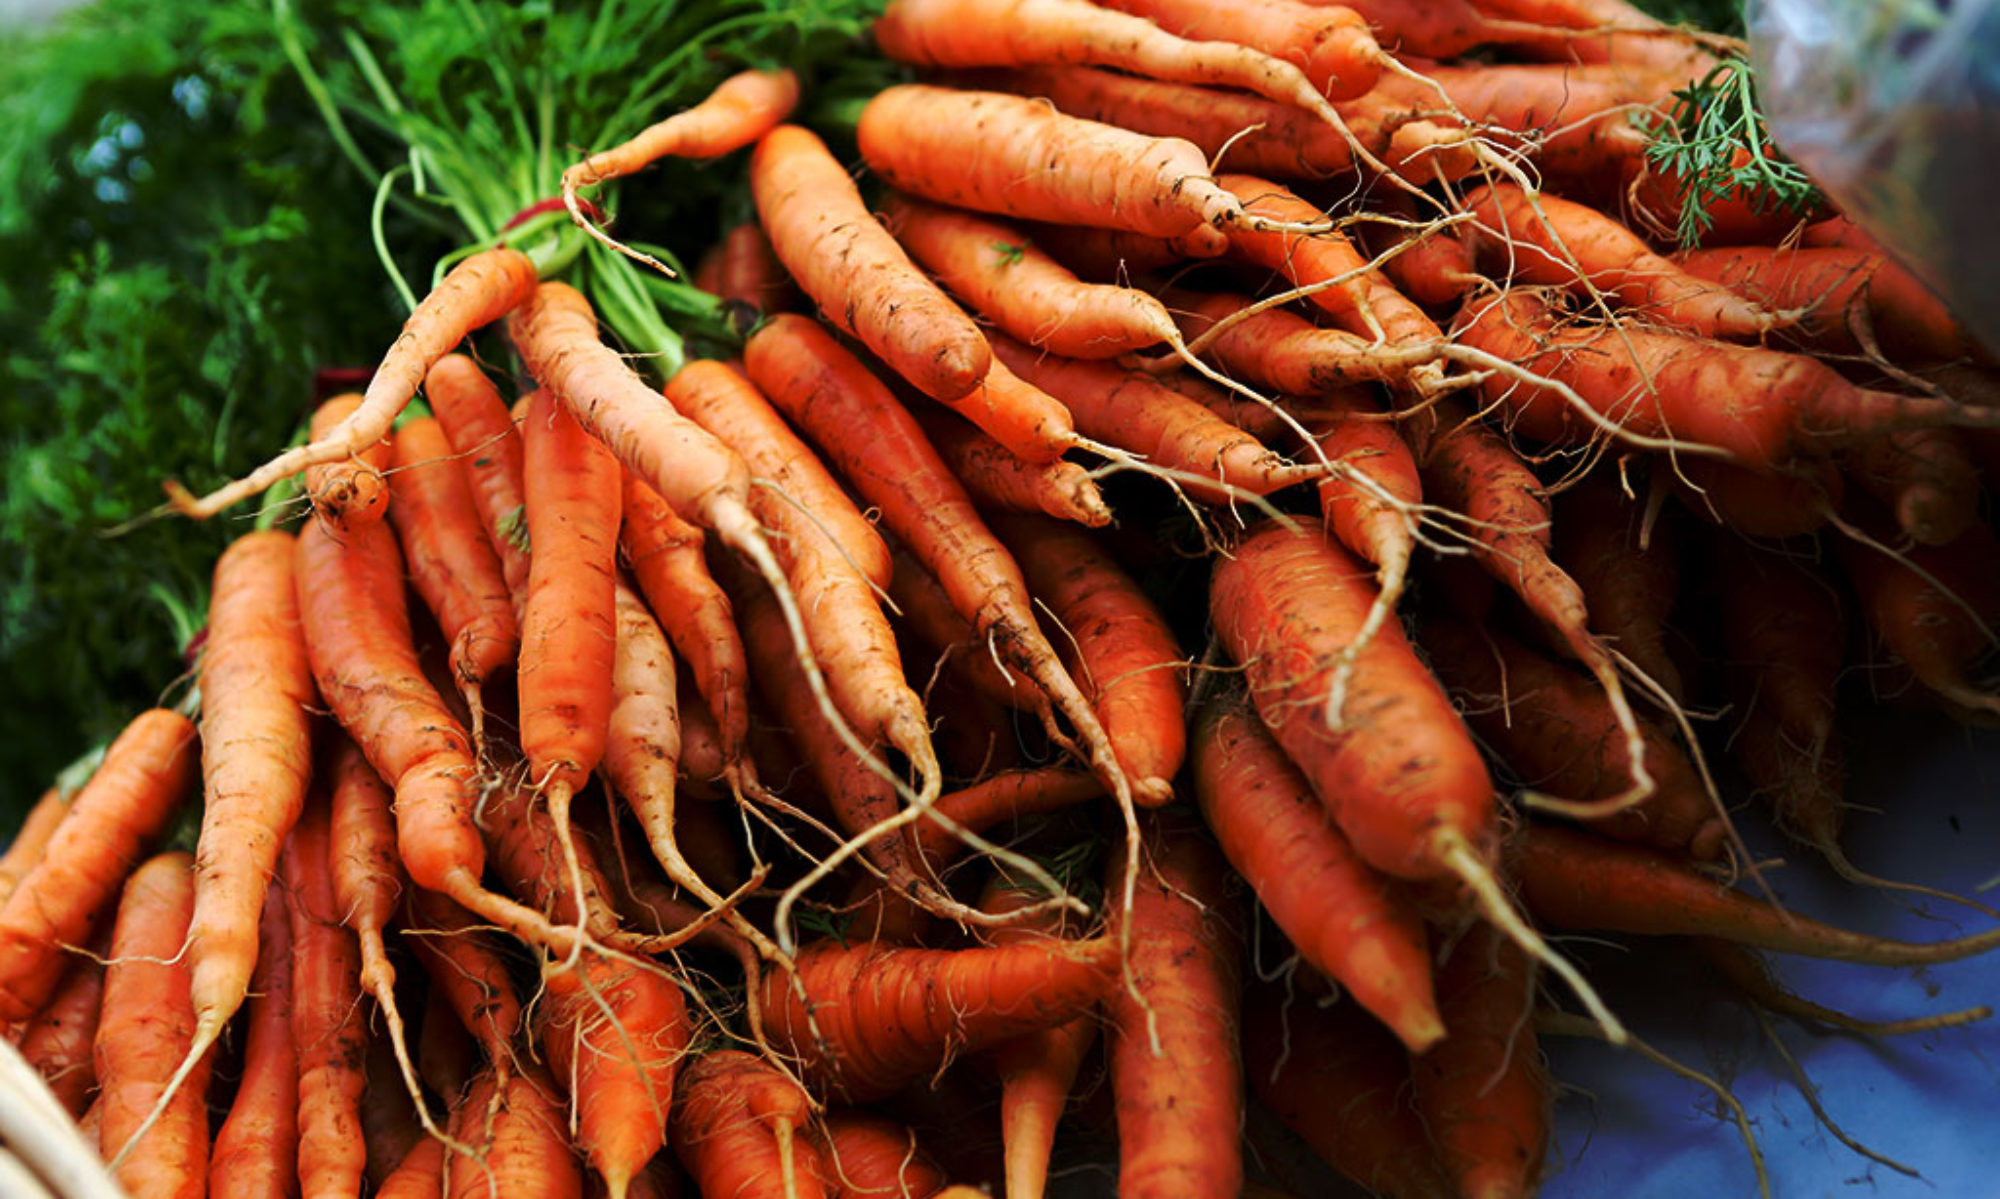 cropped-Carrots_Overlay60_1024x681.jpg